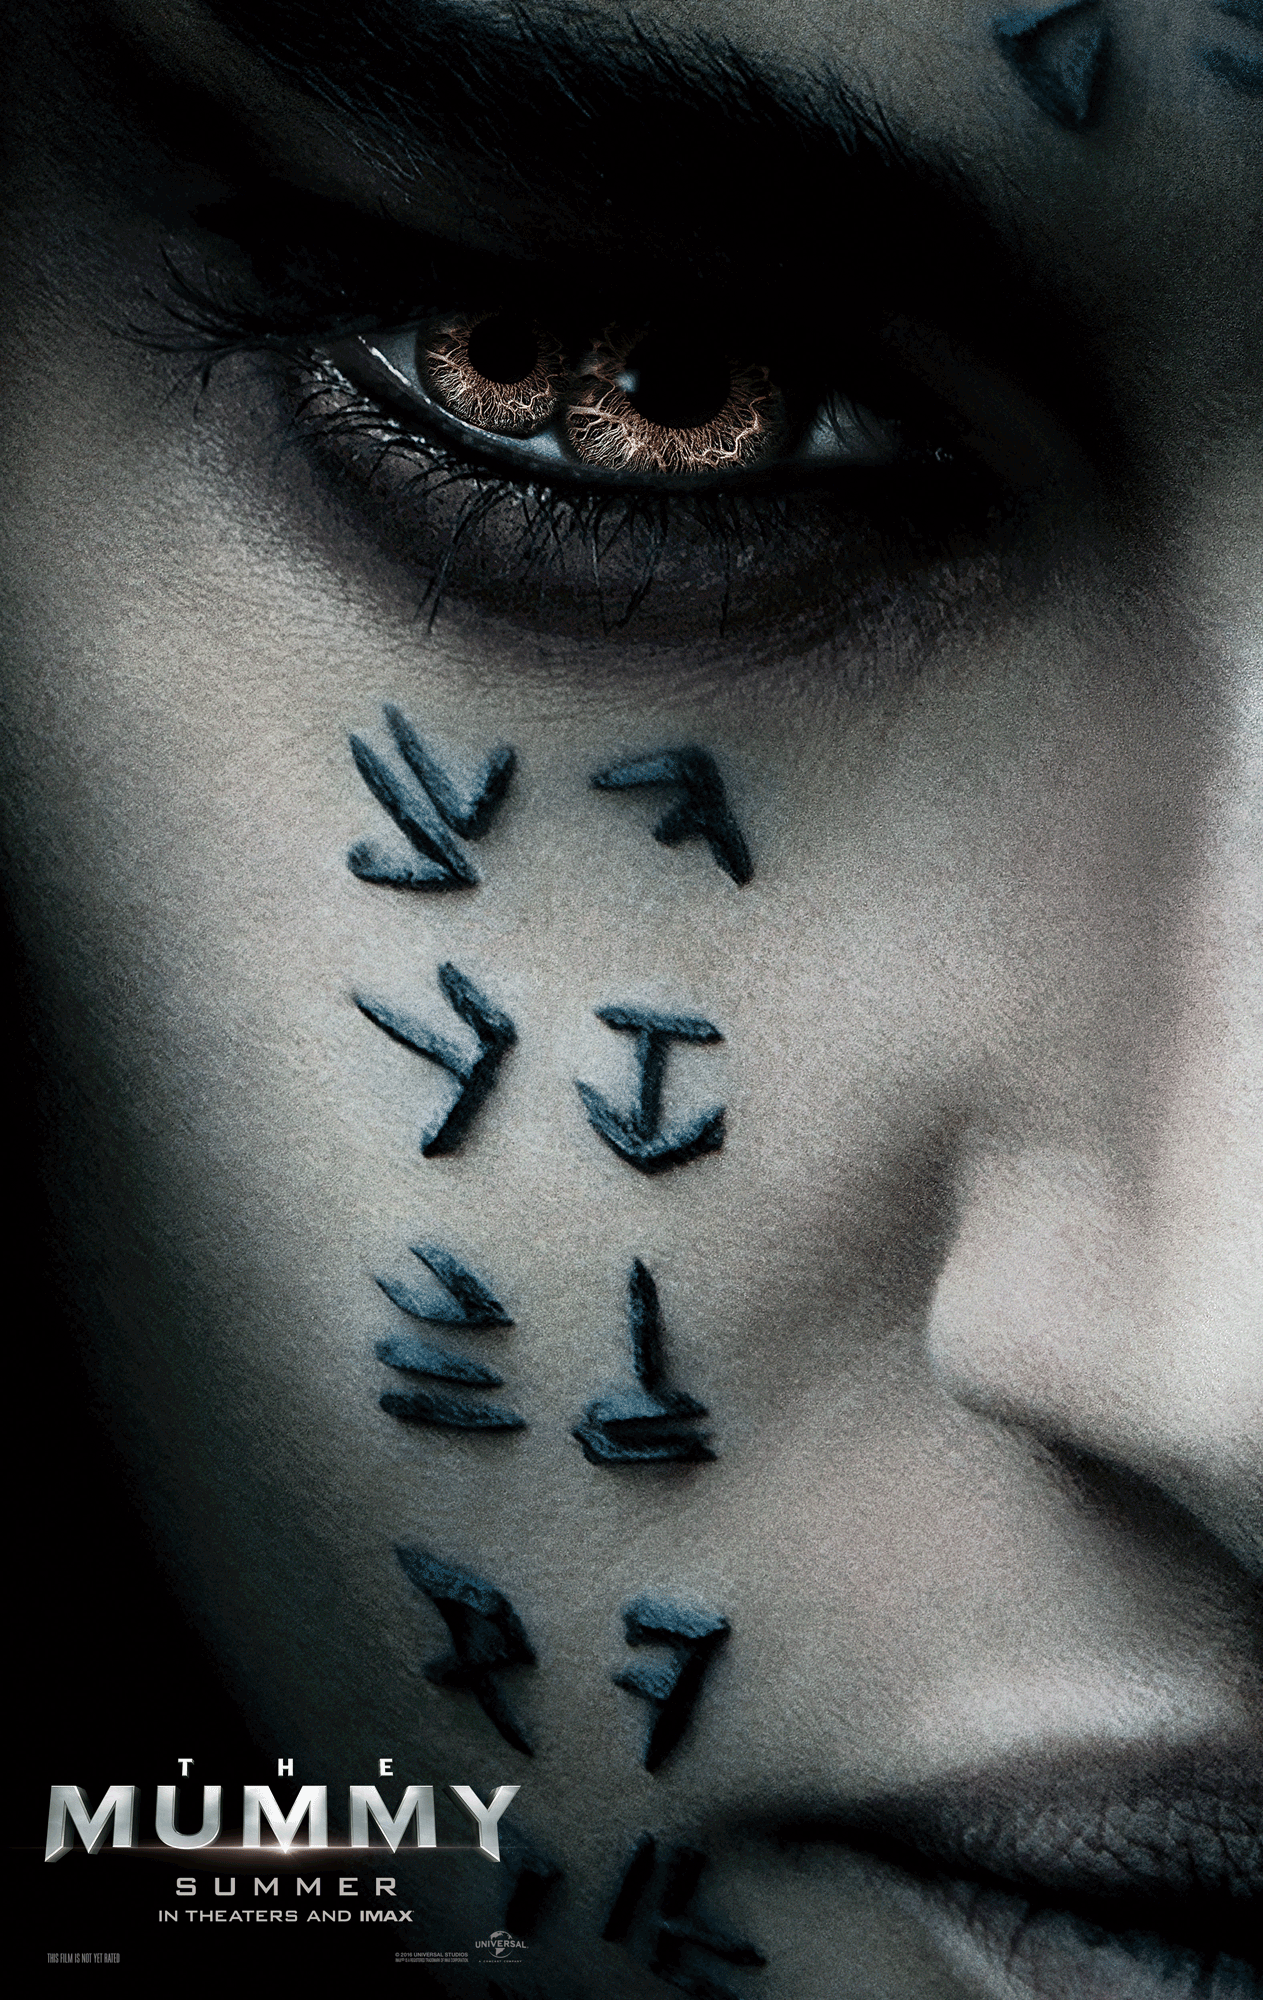 The Mummy - Poster 2